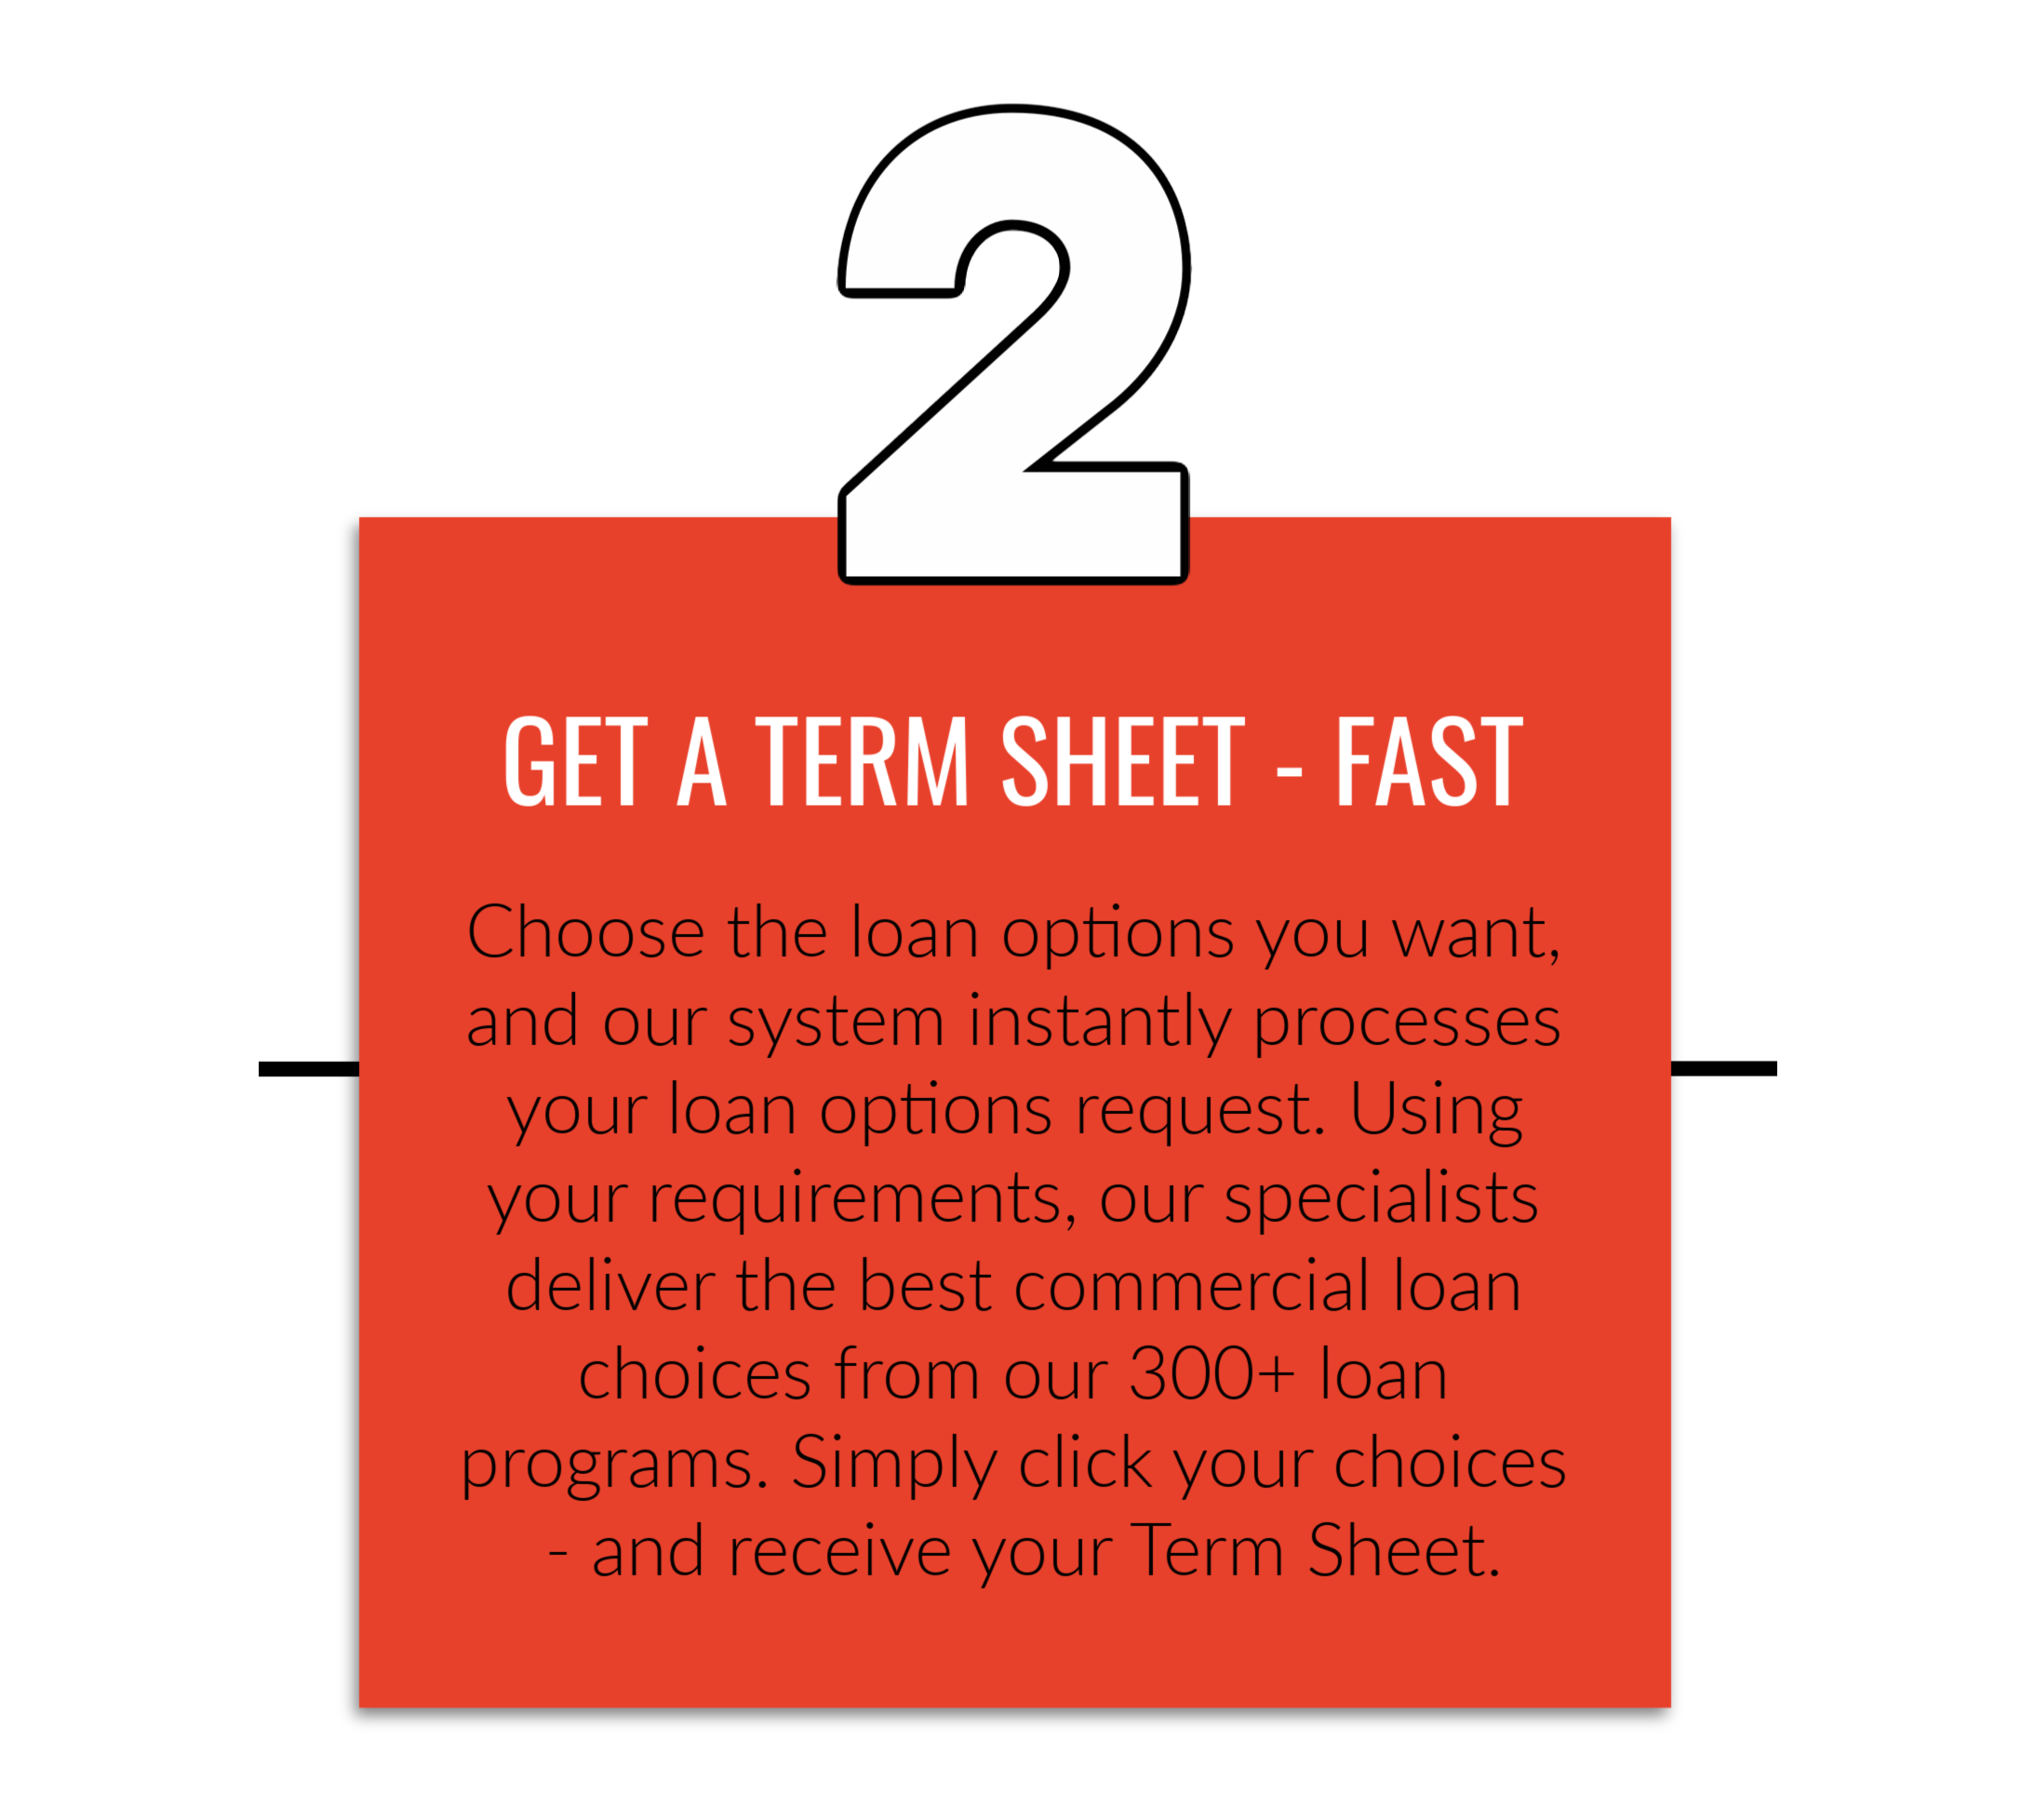 Our Process: Step 2, Get a Term Sheet